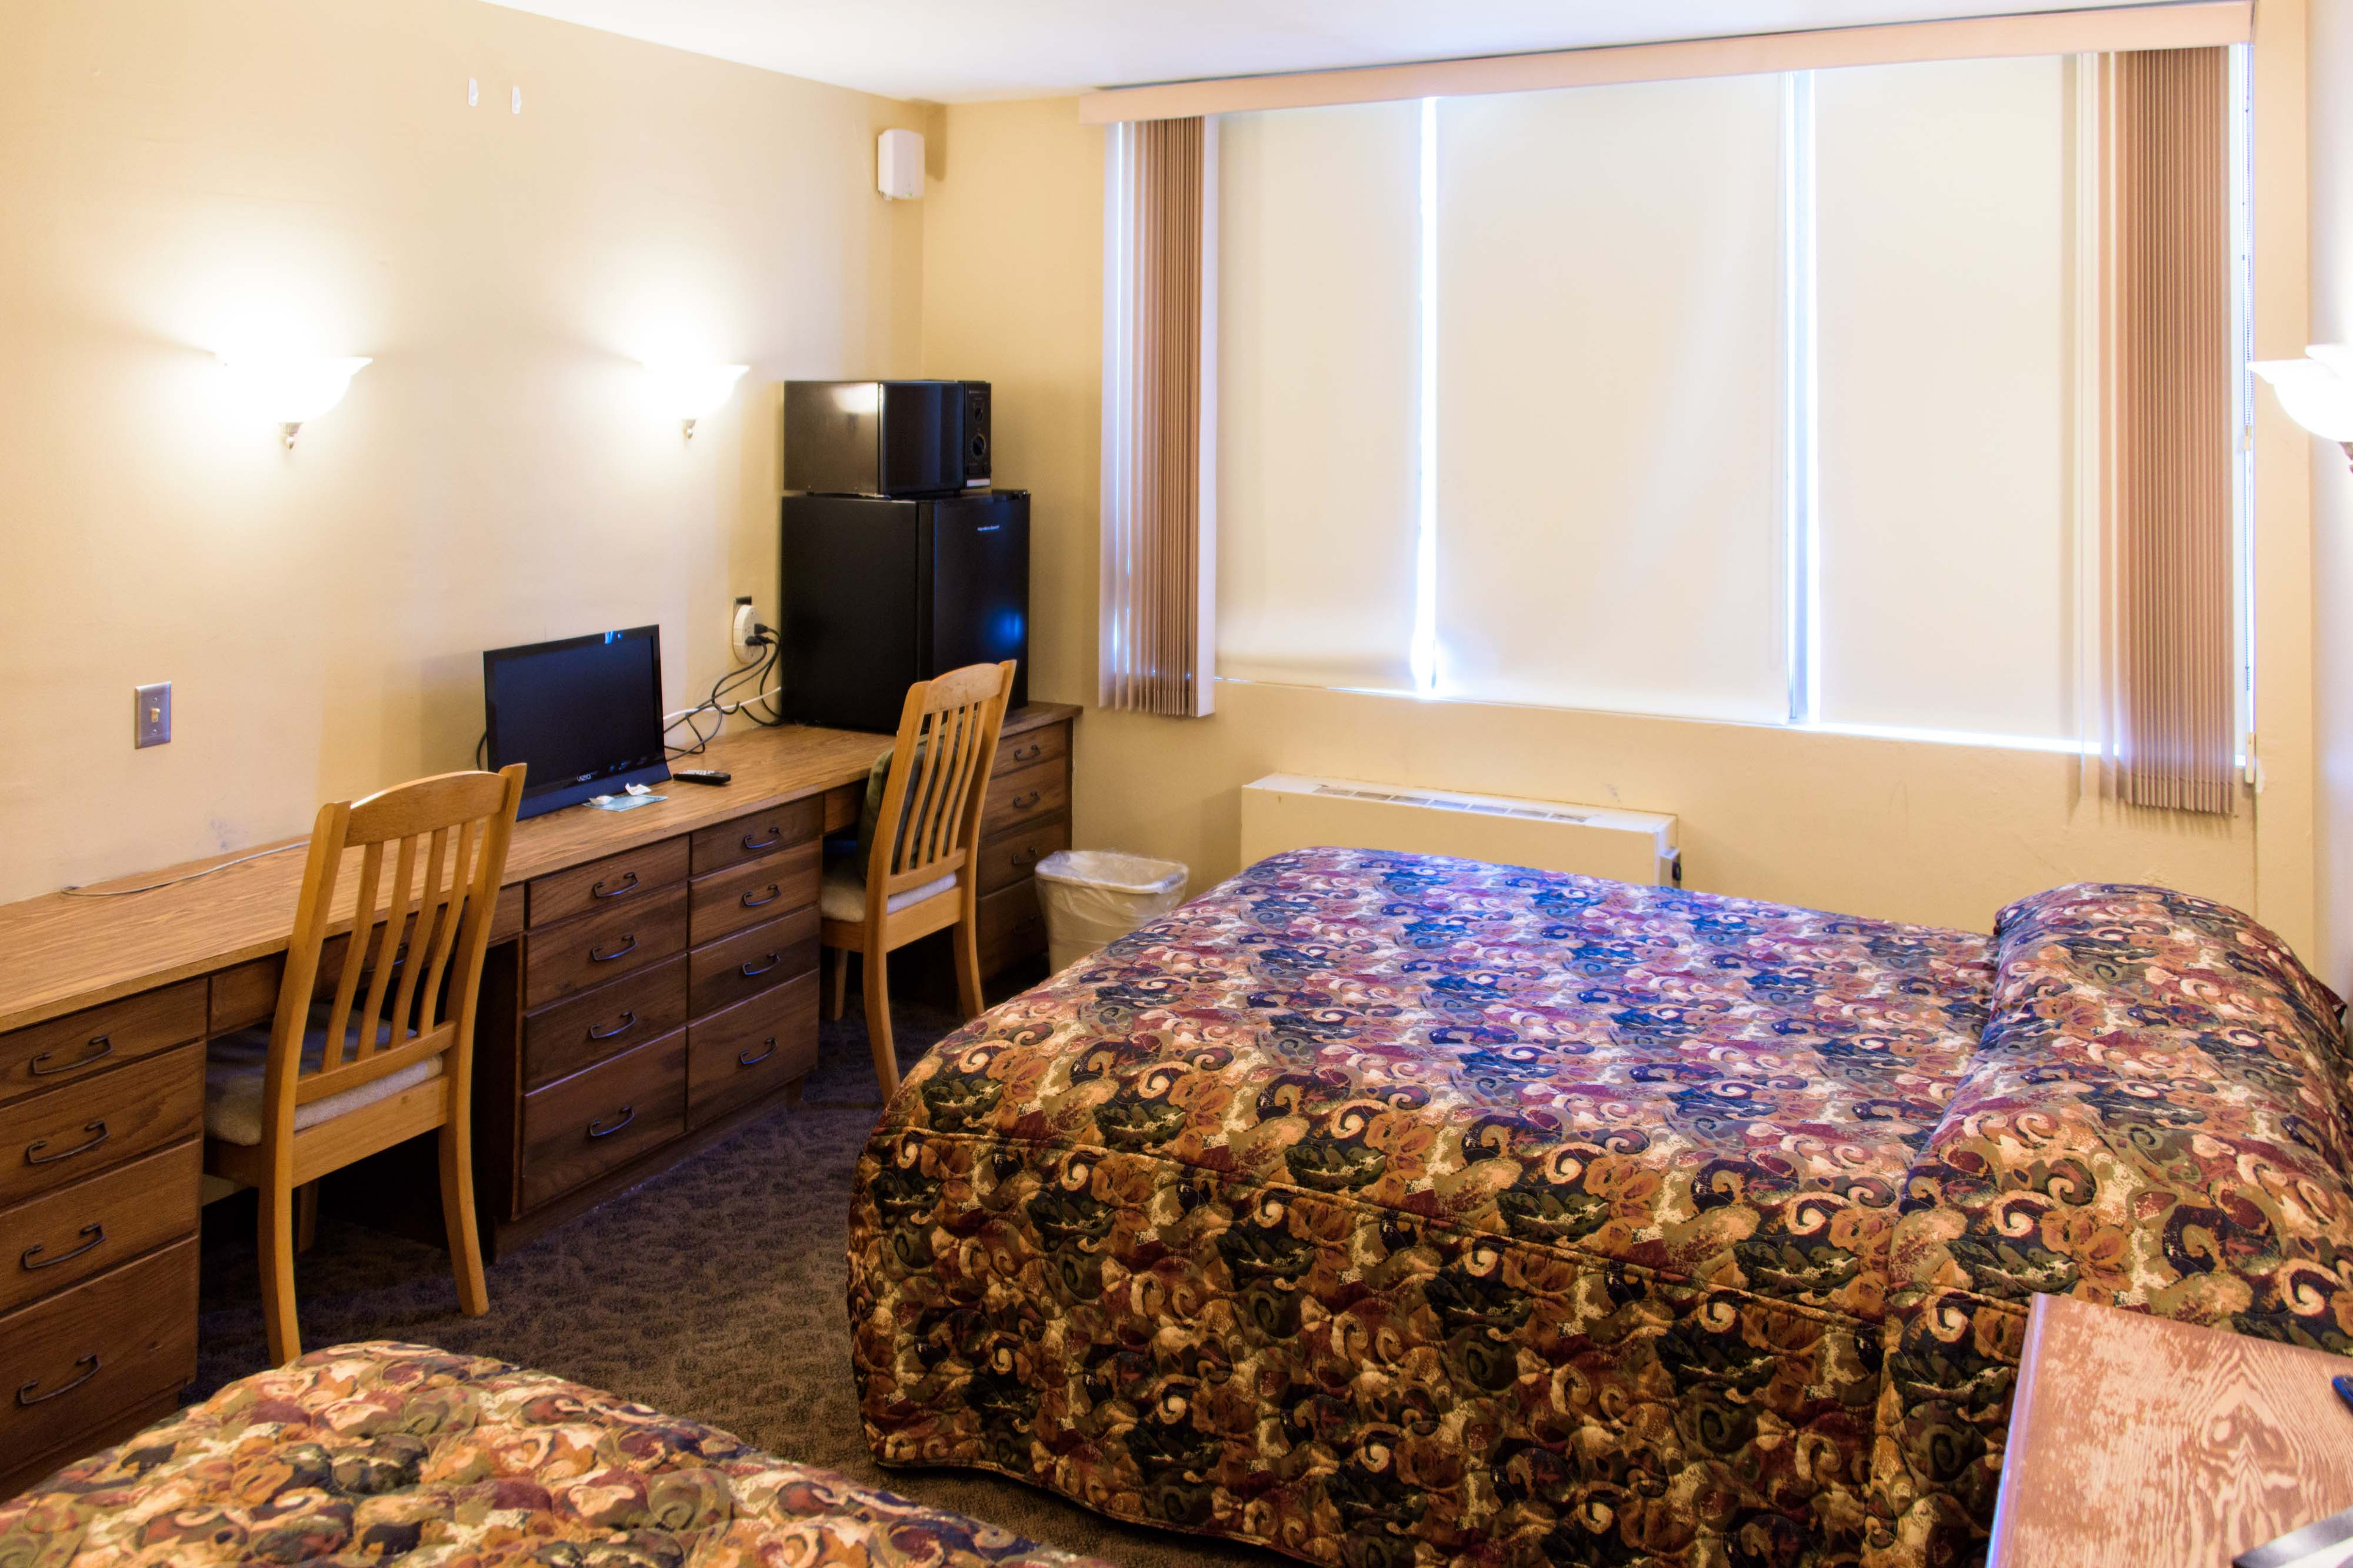 A view of Prescott Hall's standard guest room showcasing the beds, desk, TV, microwave, and fridge